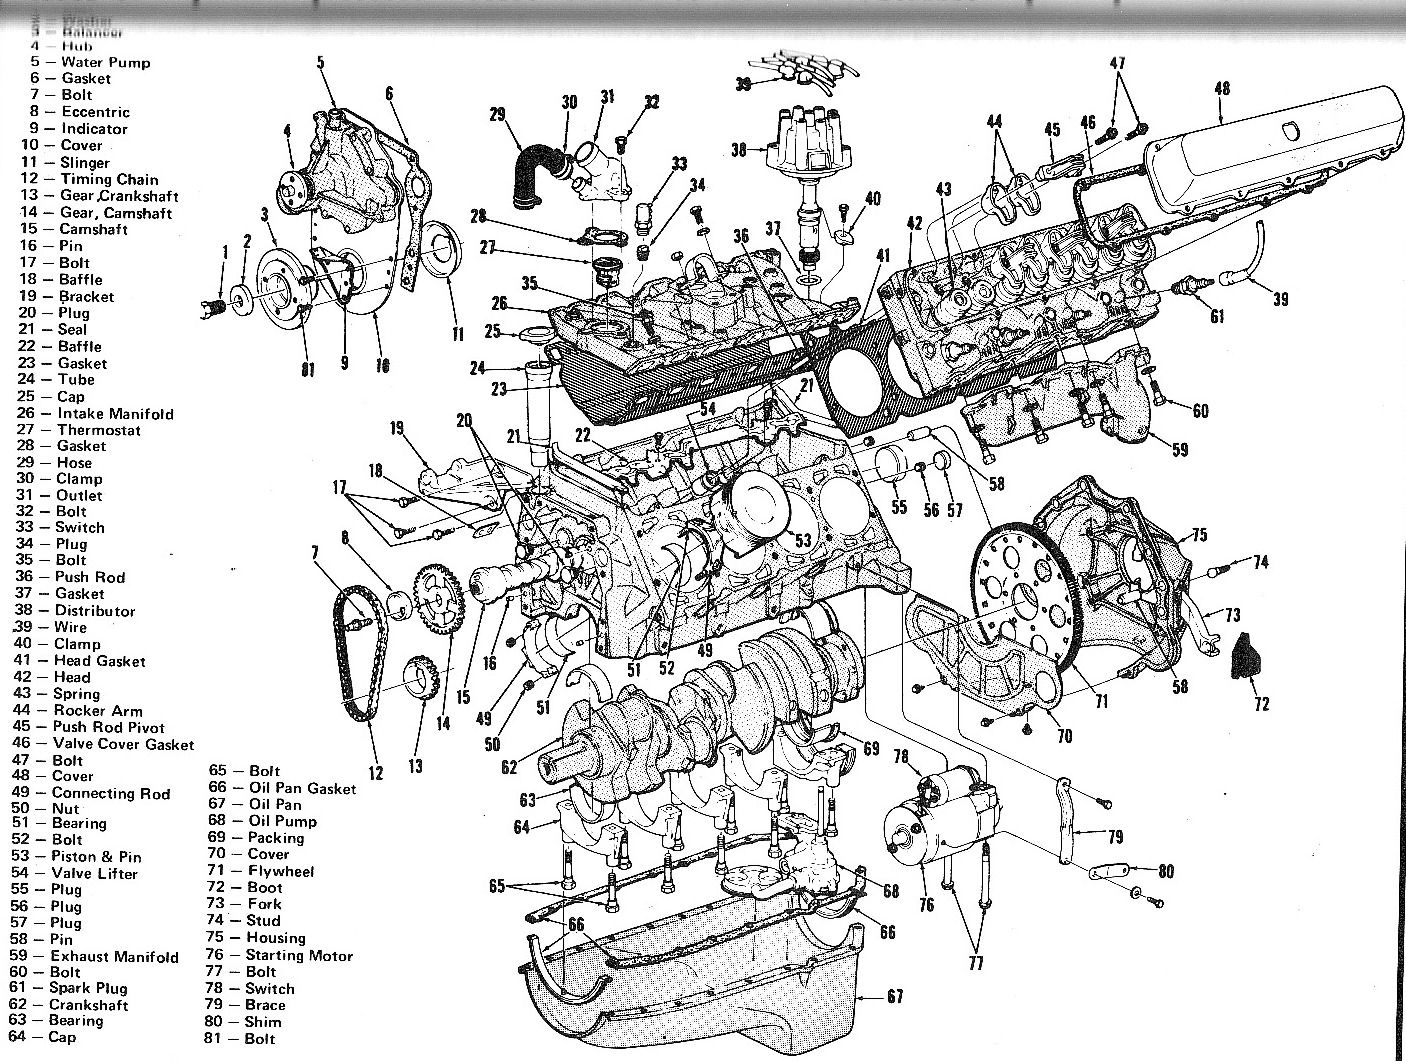 Complete V-8 Engine Diagram | Engines, Transmissions 3-D Lay out ...